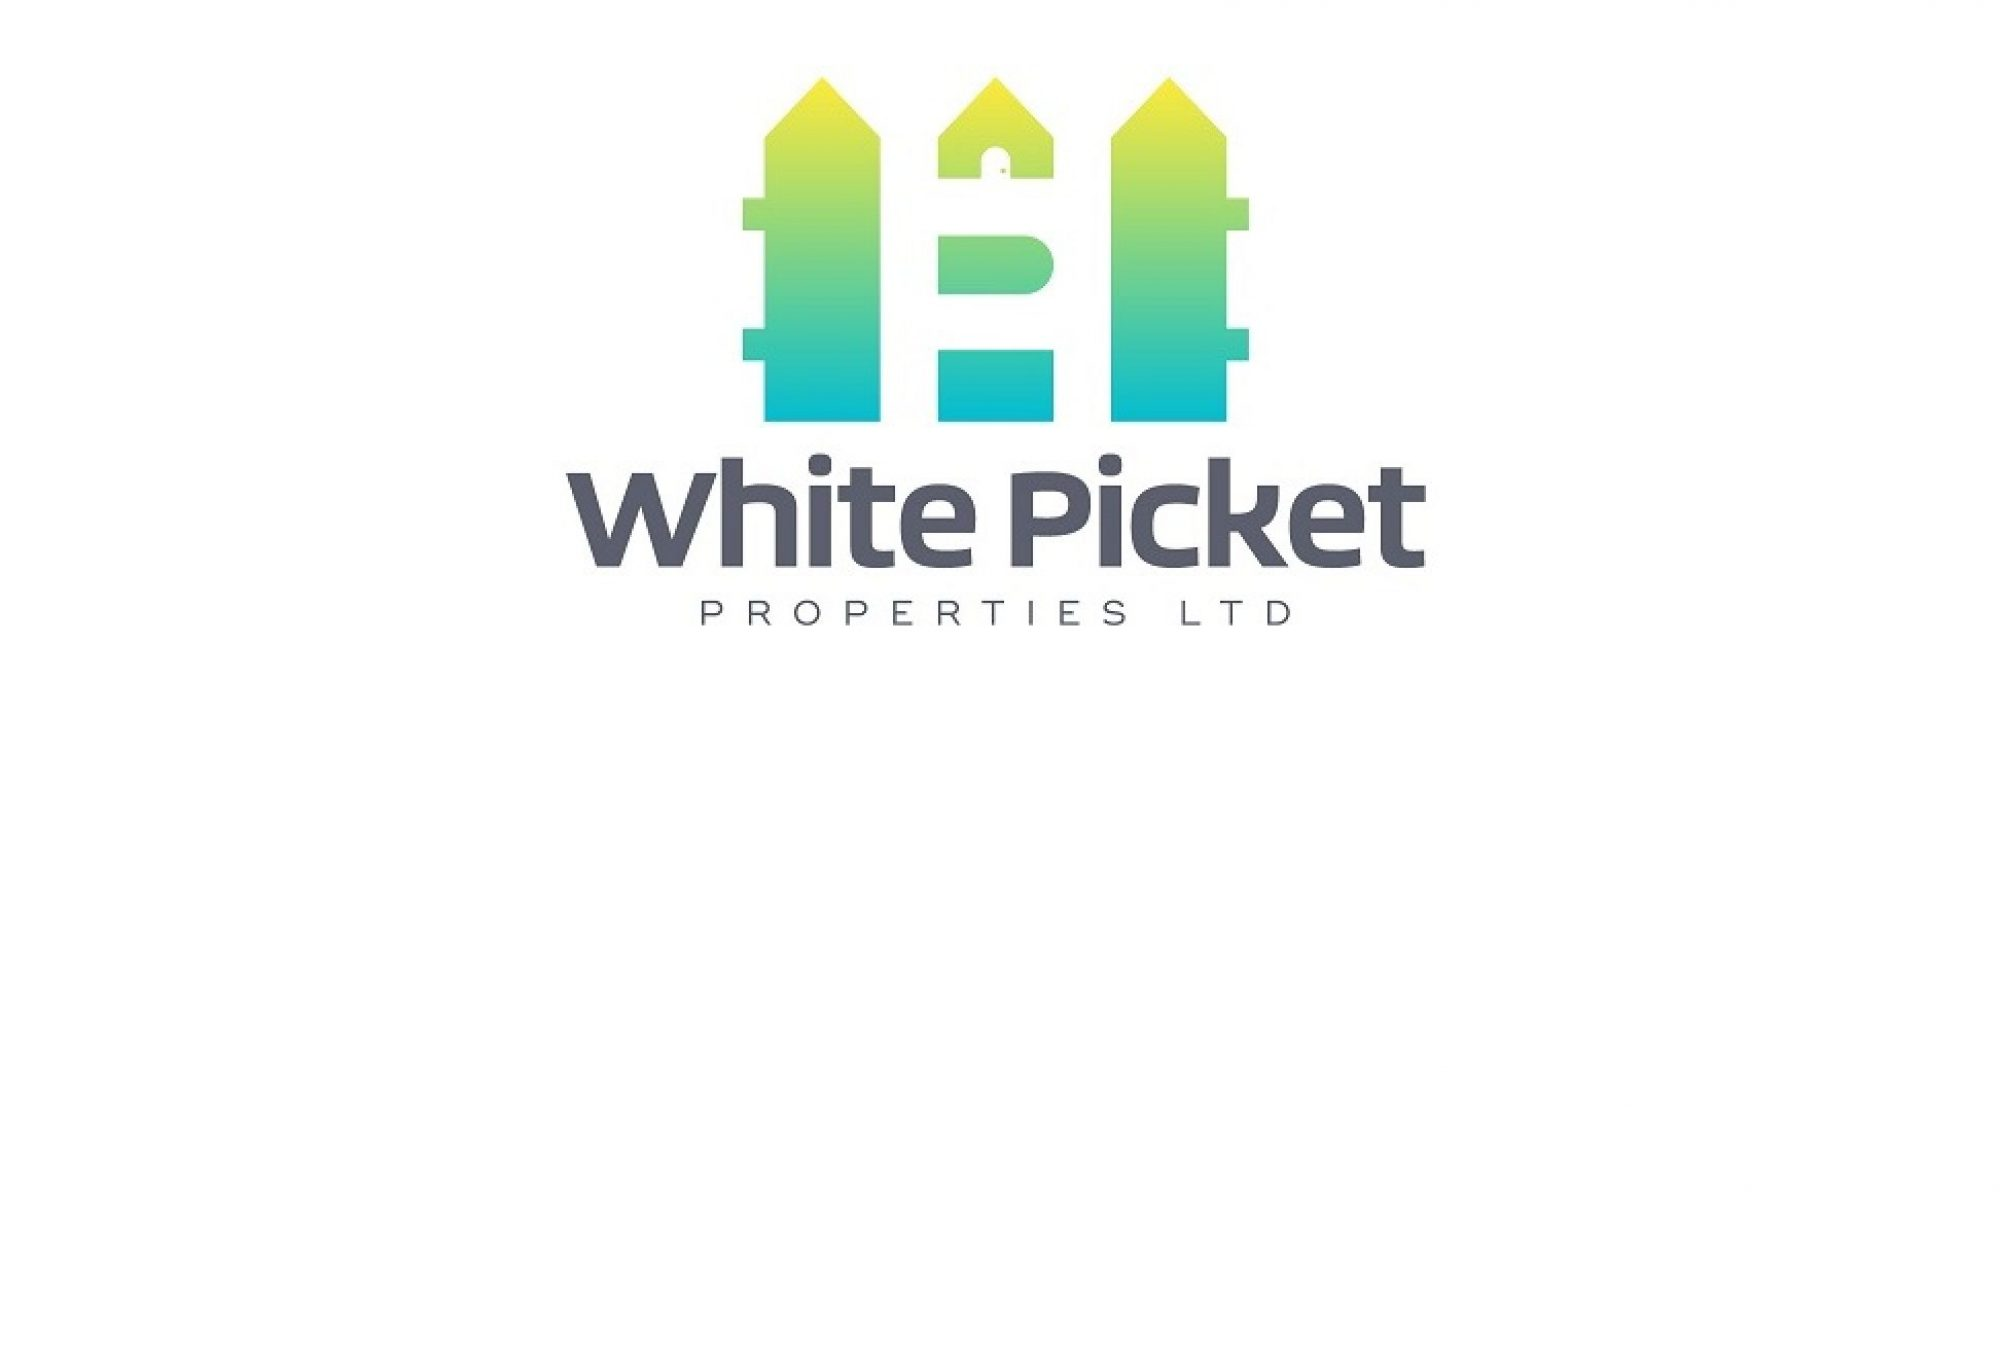 White Picket Properties